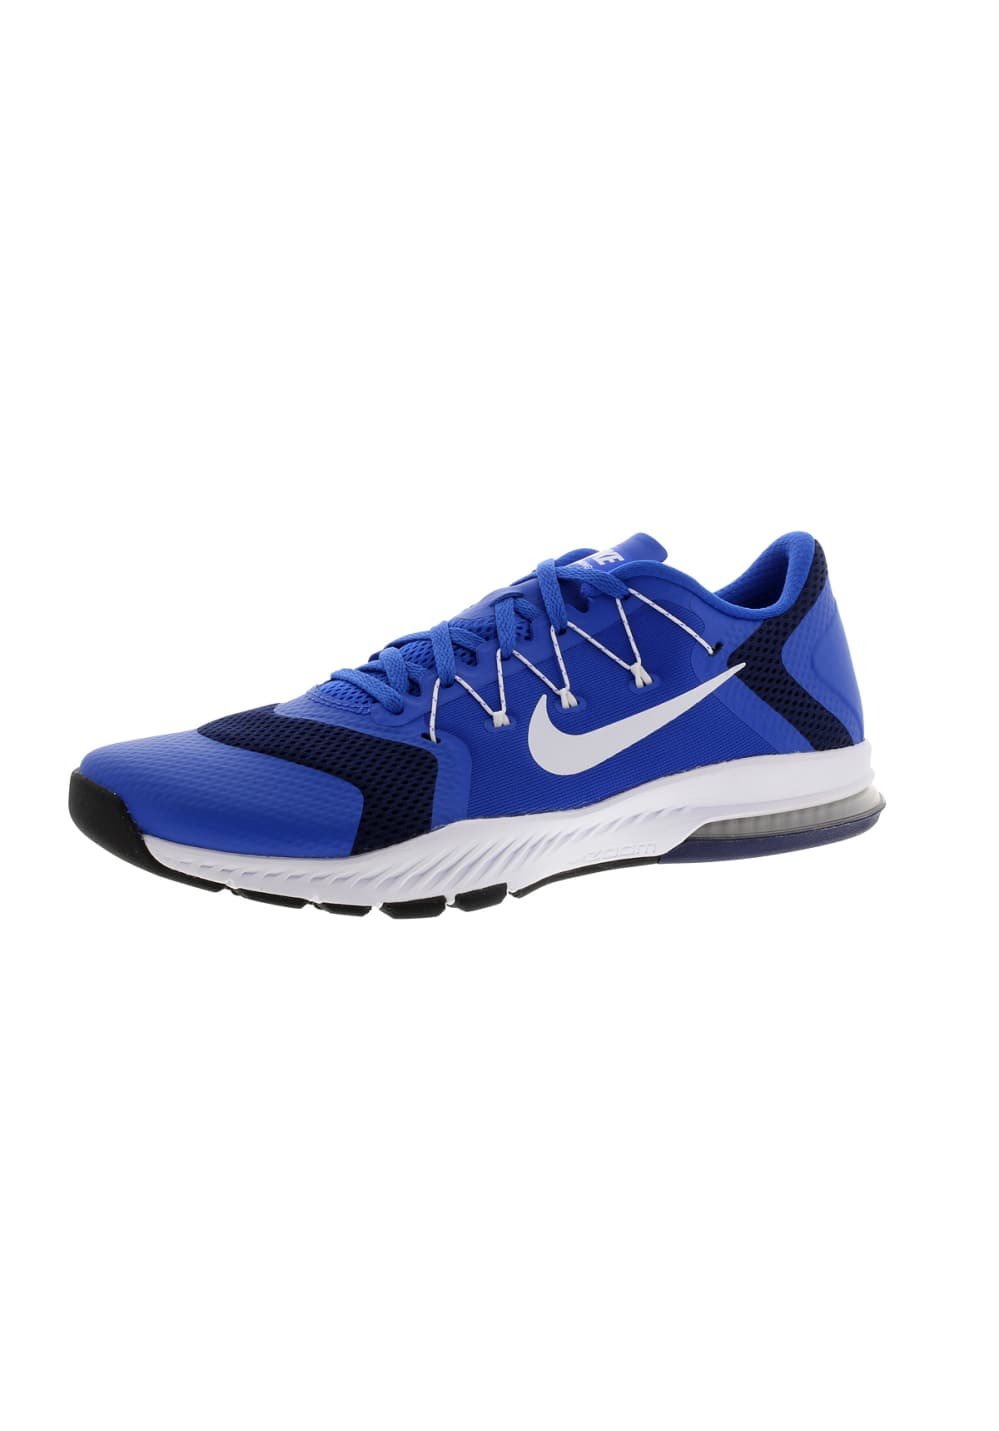 1cc42e08c606 Home · Shop · Nike Zoom Train Complete - Fitness shoes for Men - Blue. Back  to Overview. 1  2  3  4  5. Previous